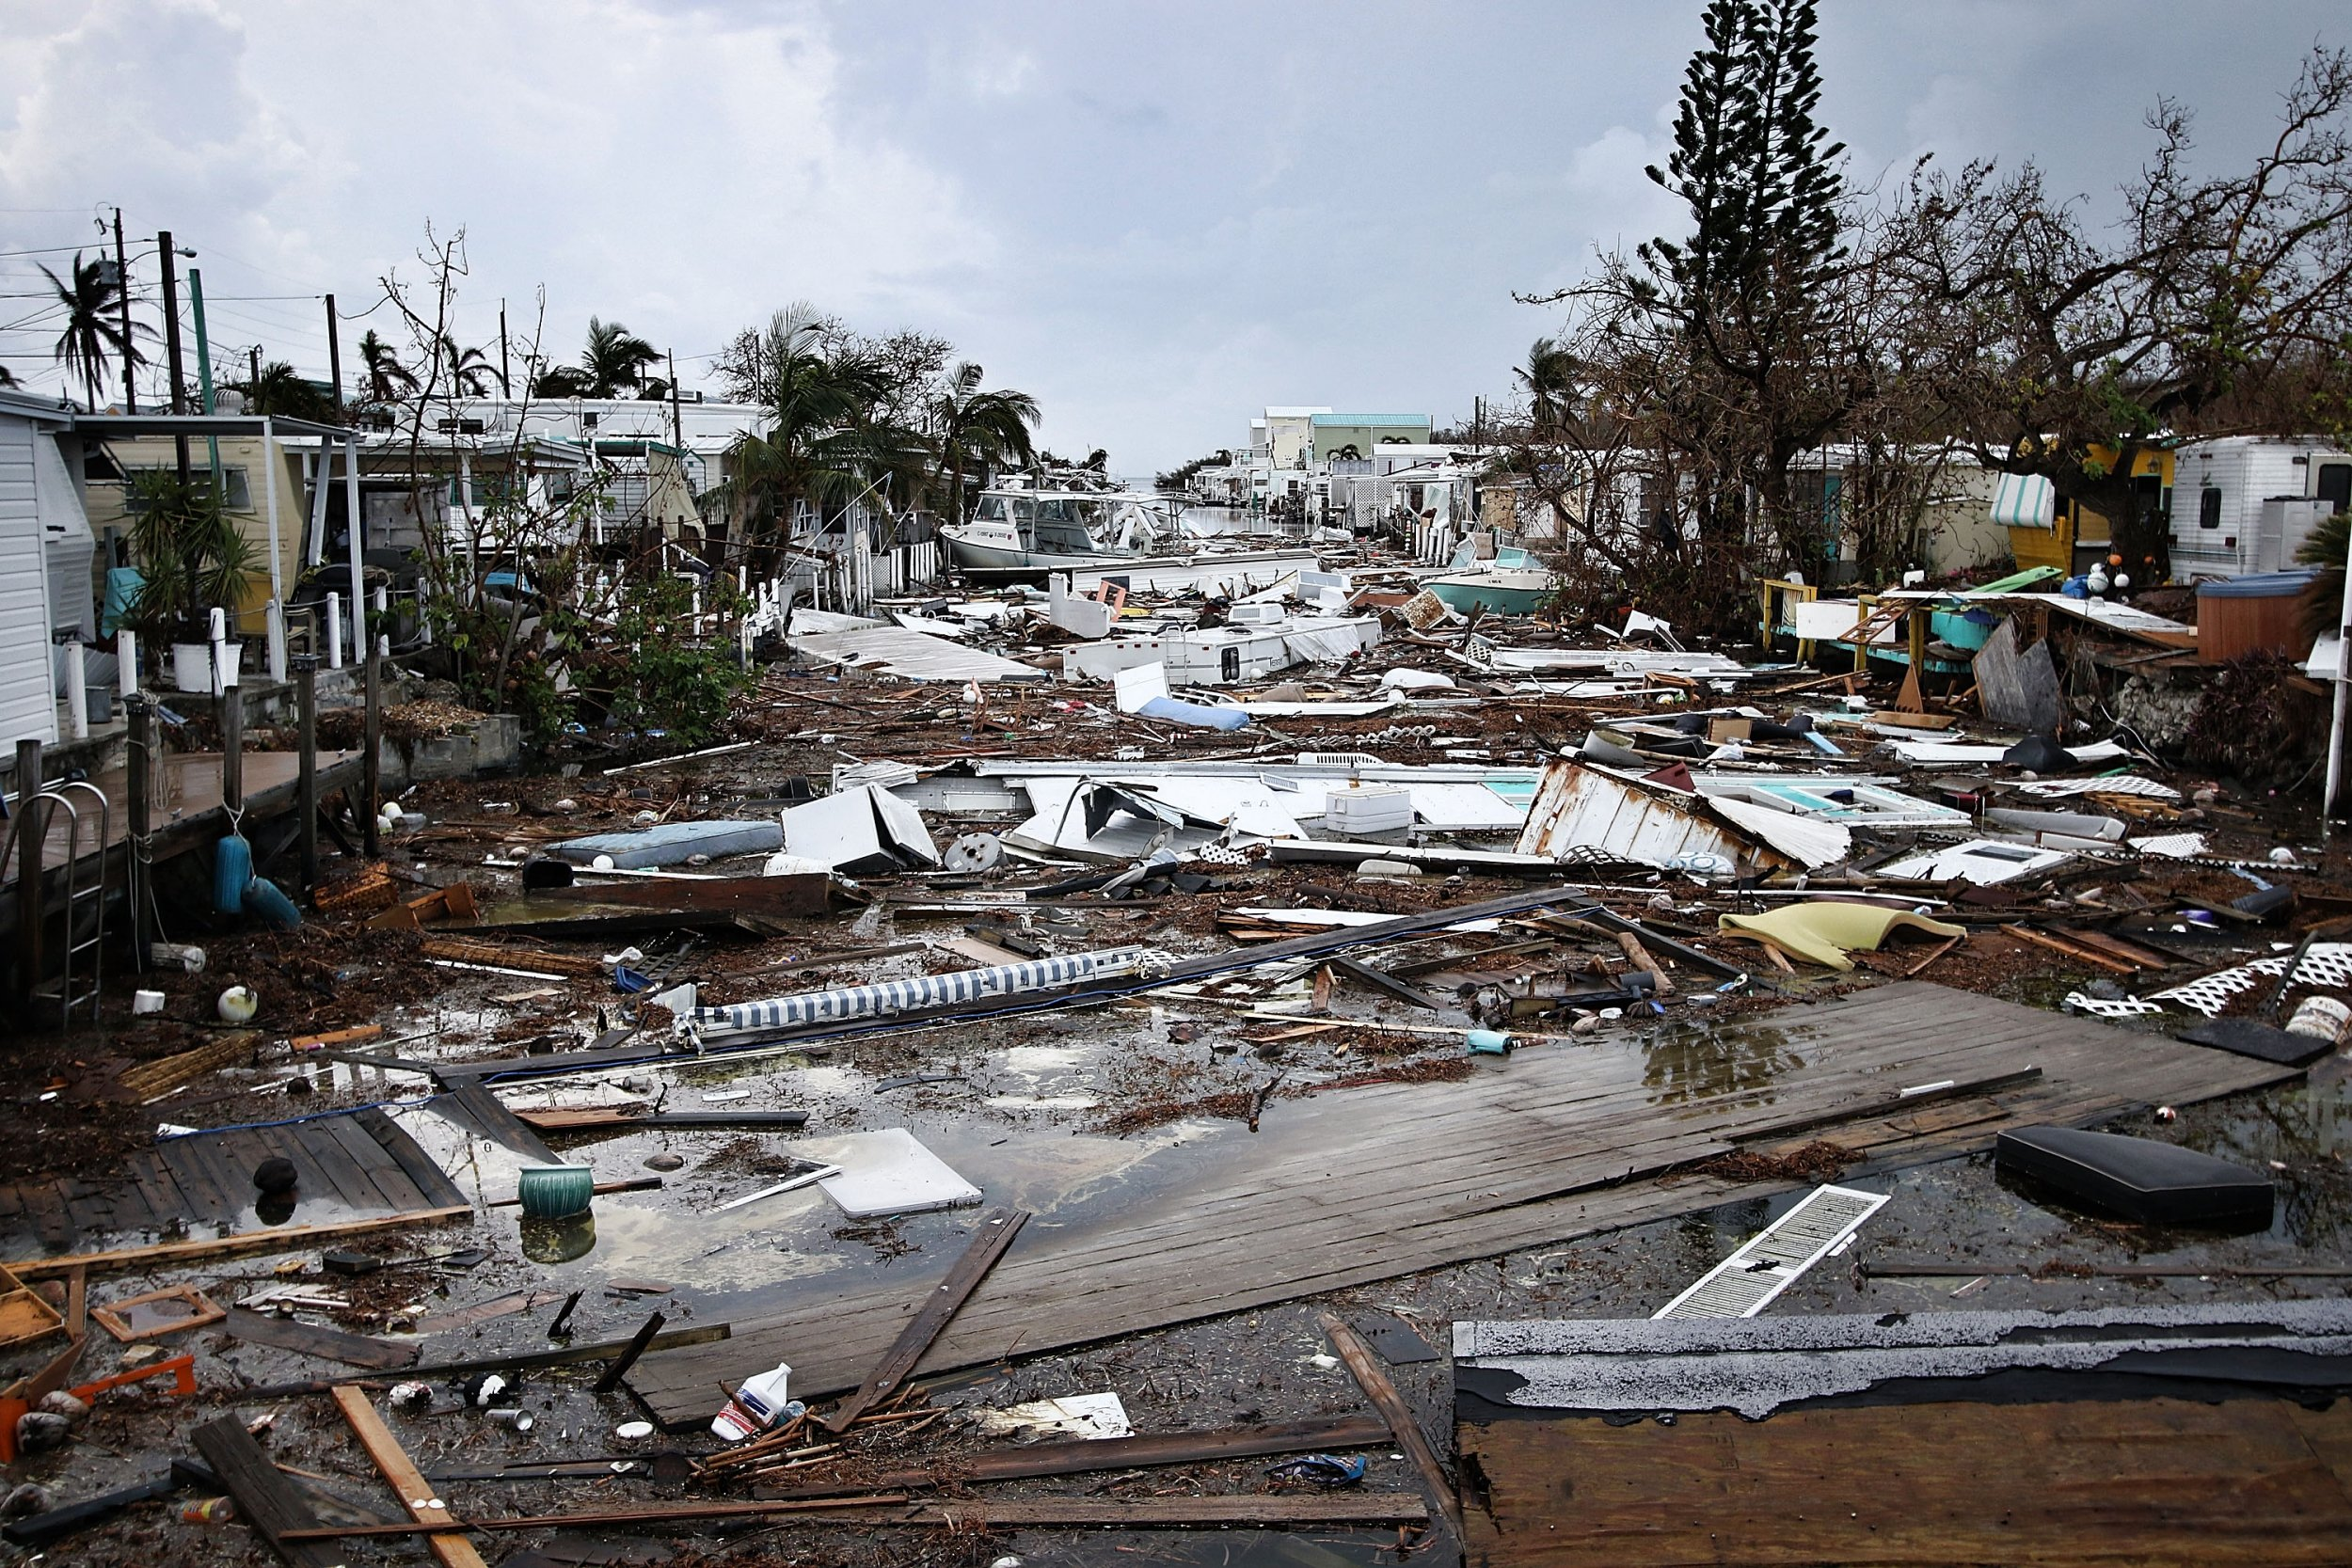 Earth Changes from September 2017 - to present / Biblical Hurricanes, Earthquakes, Floods, Volcanic Activity, Fires, Snow Ice Storms - Page 4 1005tropicalstormnate